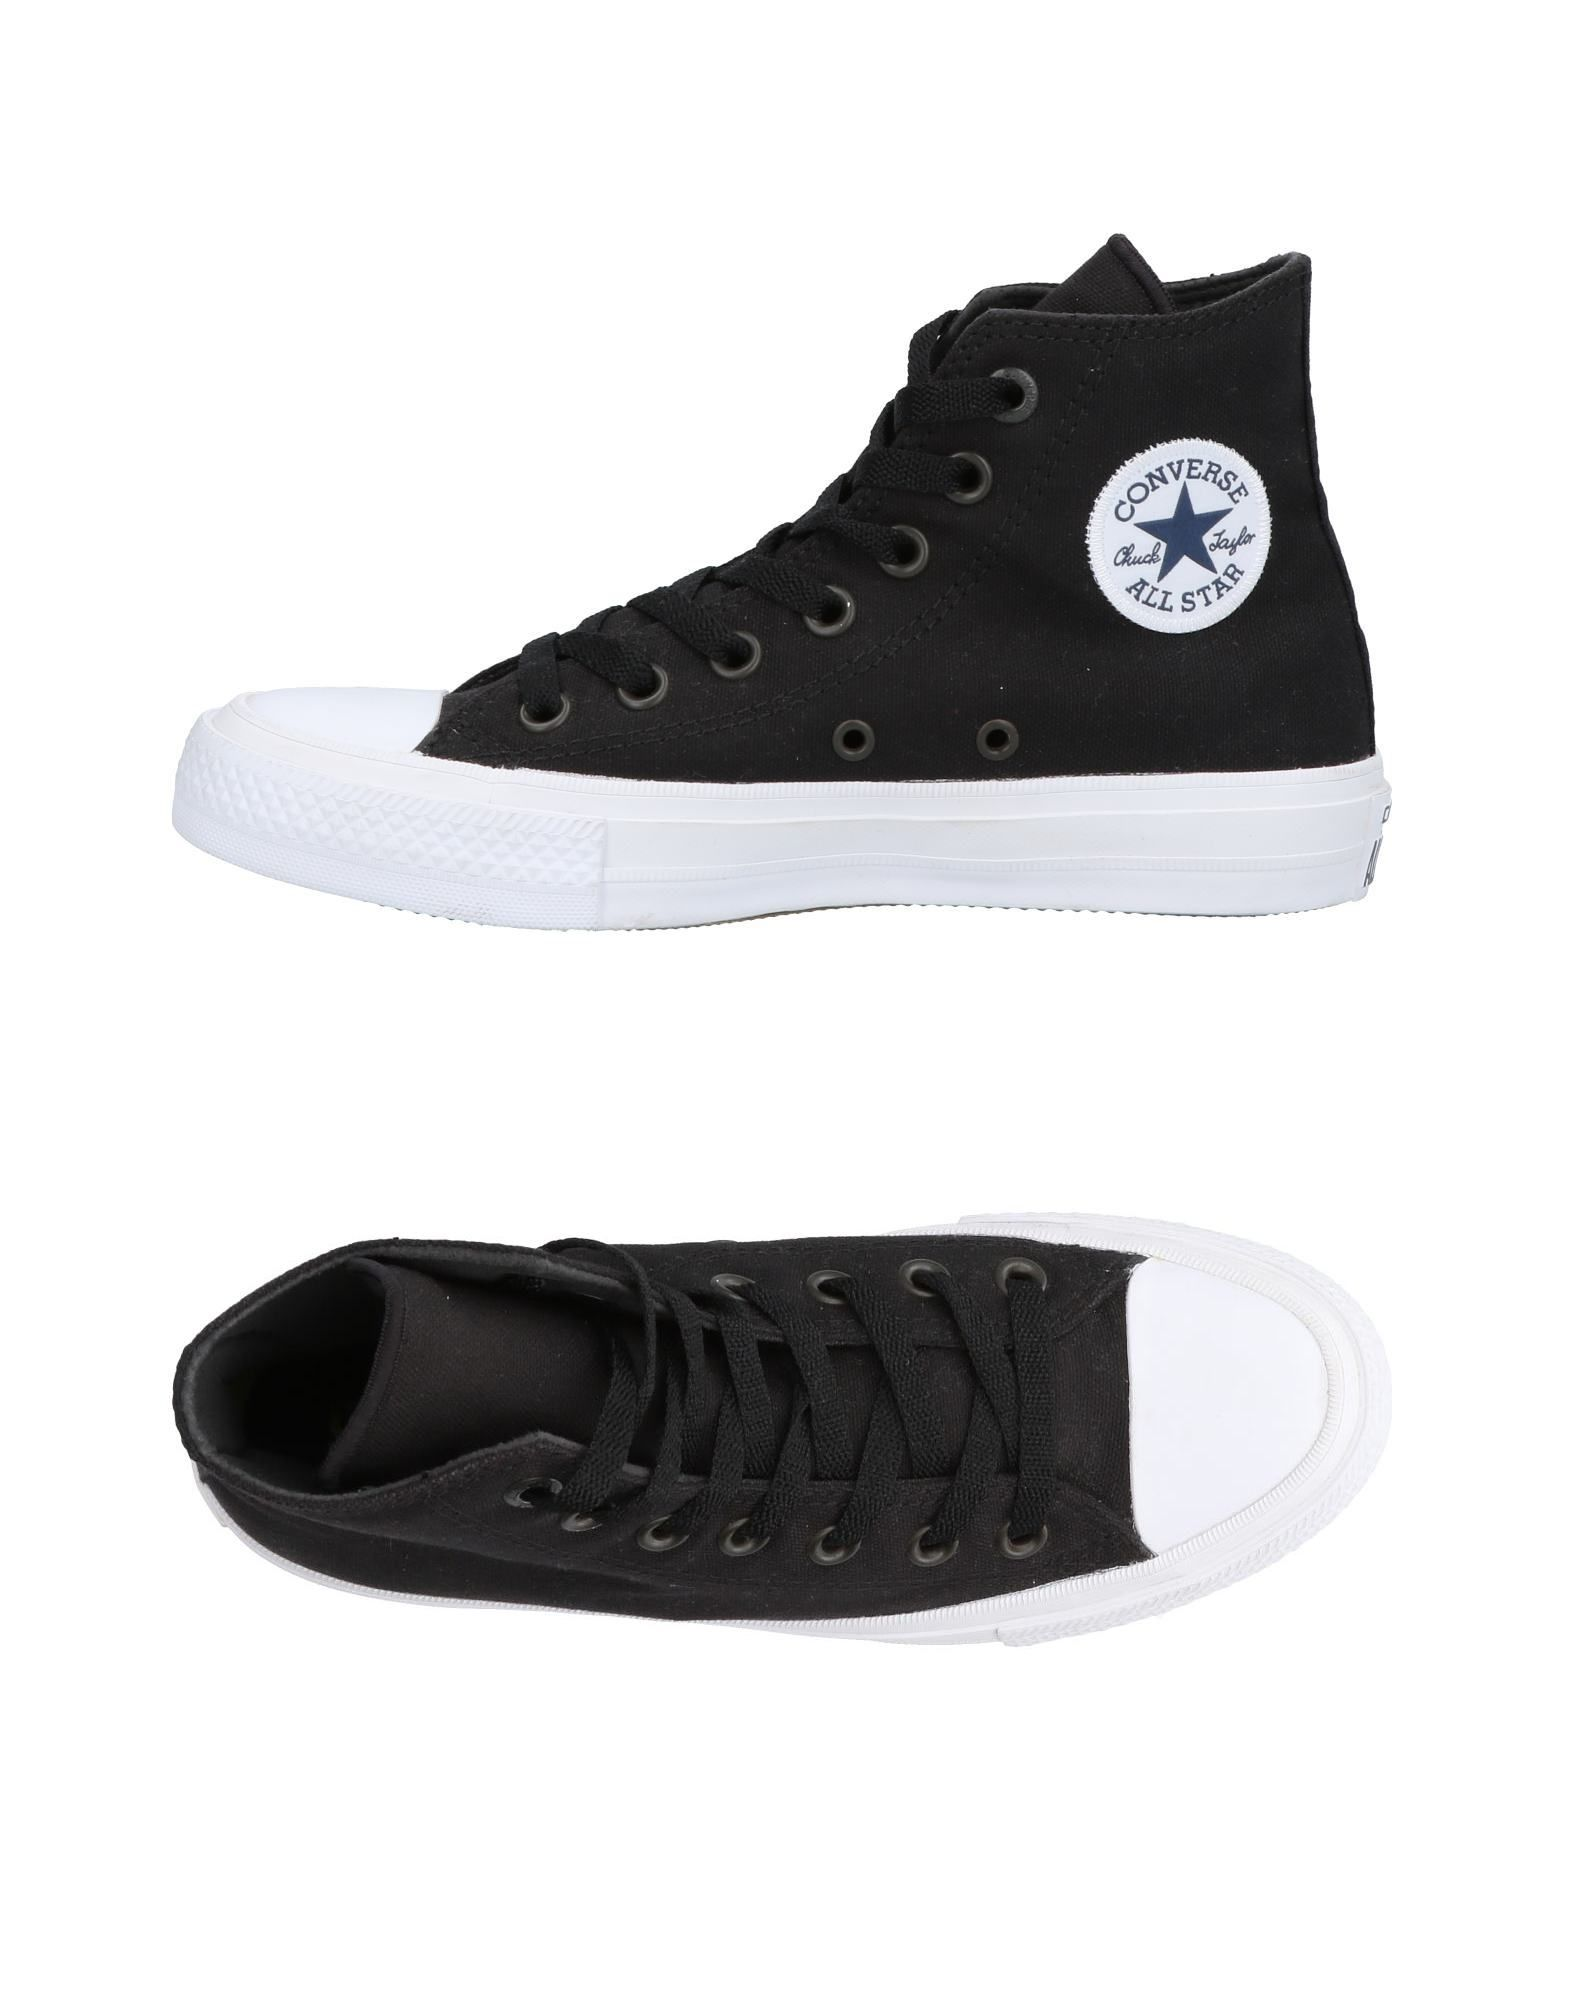 CONVERSE ALL STAR CHUCK TAYLOR II Высокие кеды и кроссовки слиперы chuck taylor all star cove converse